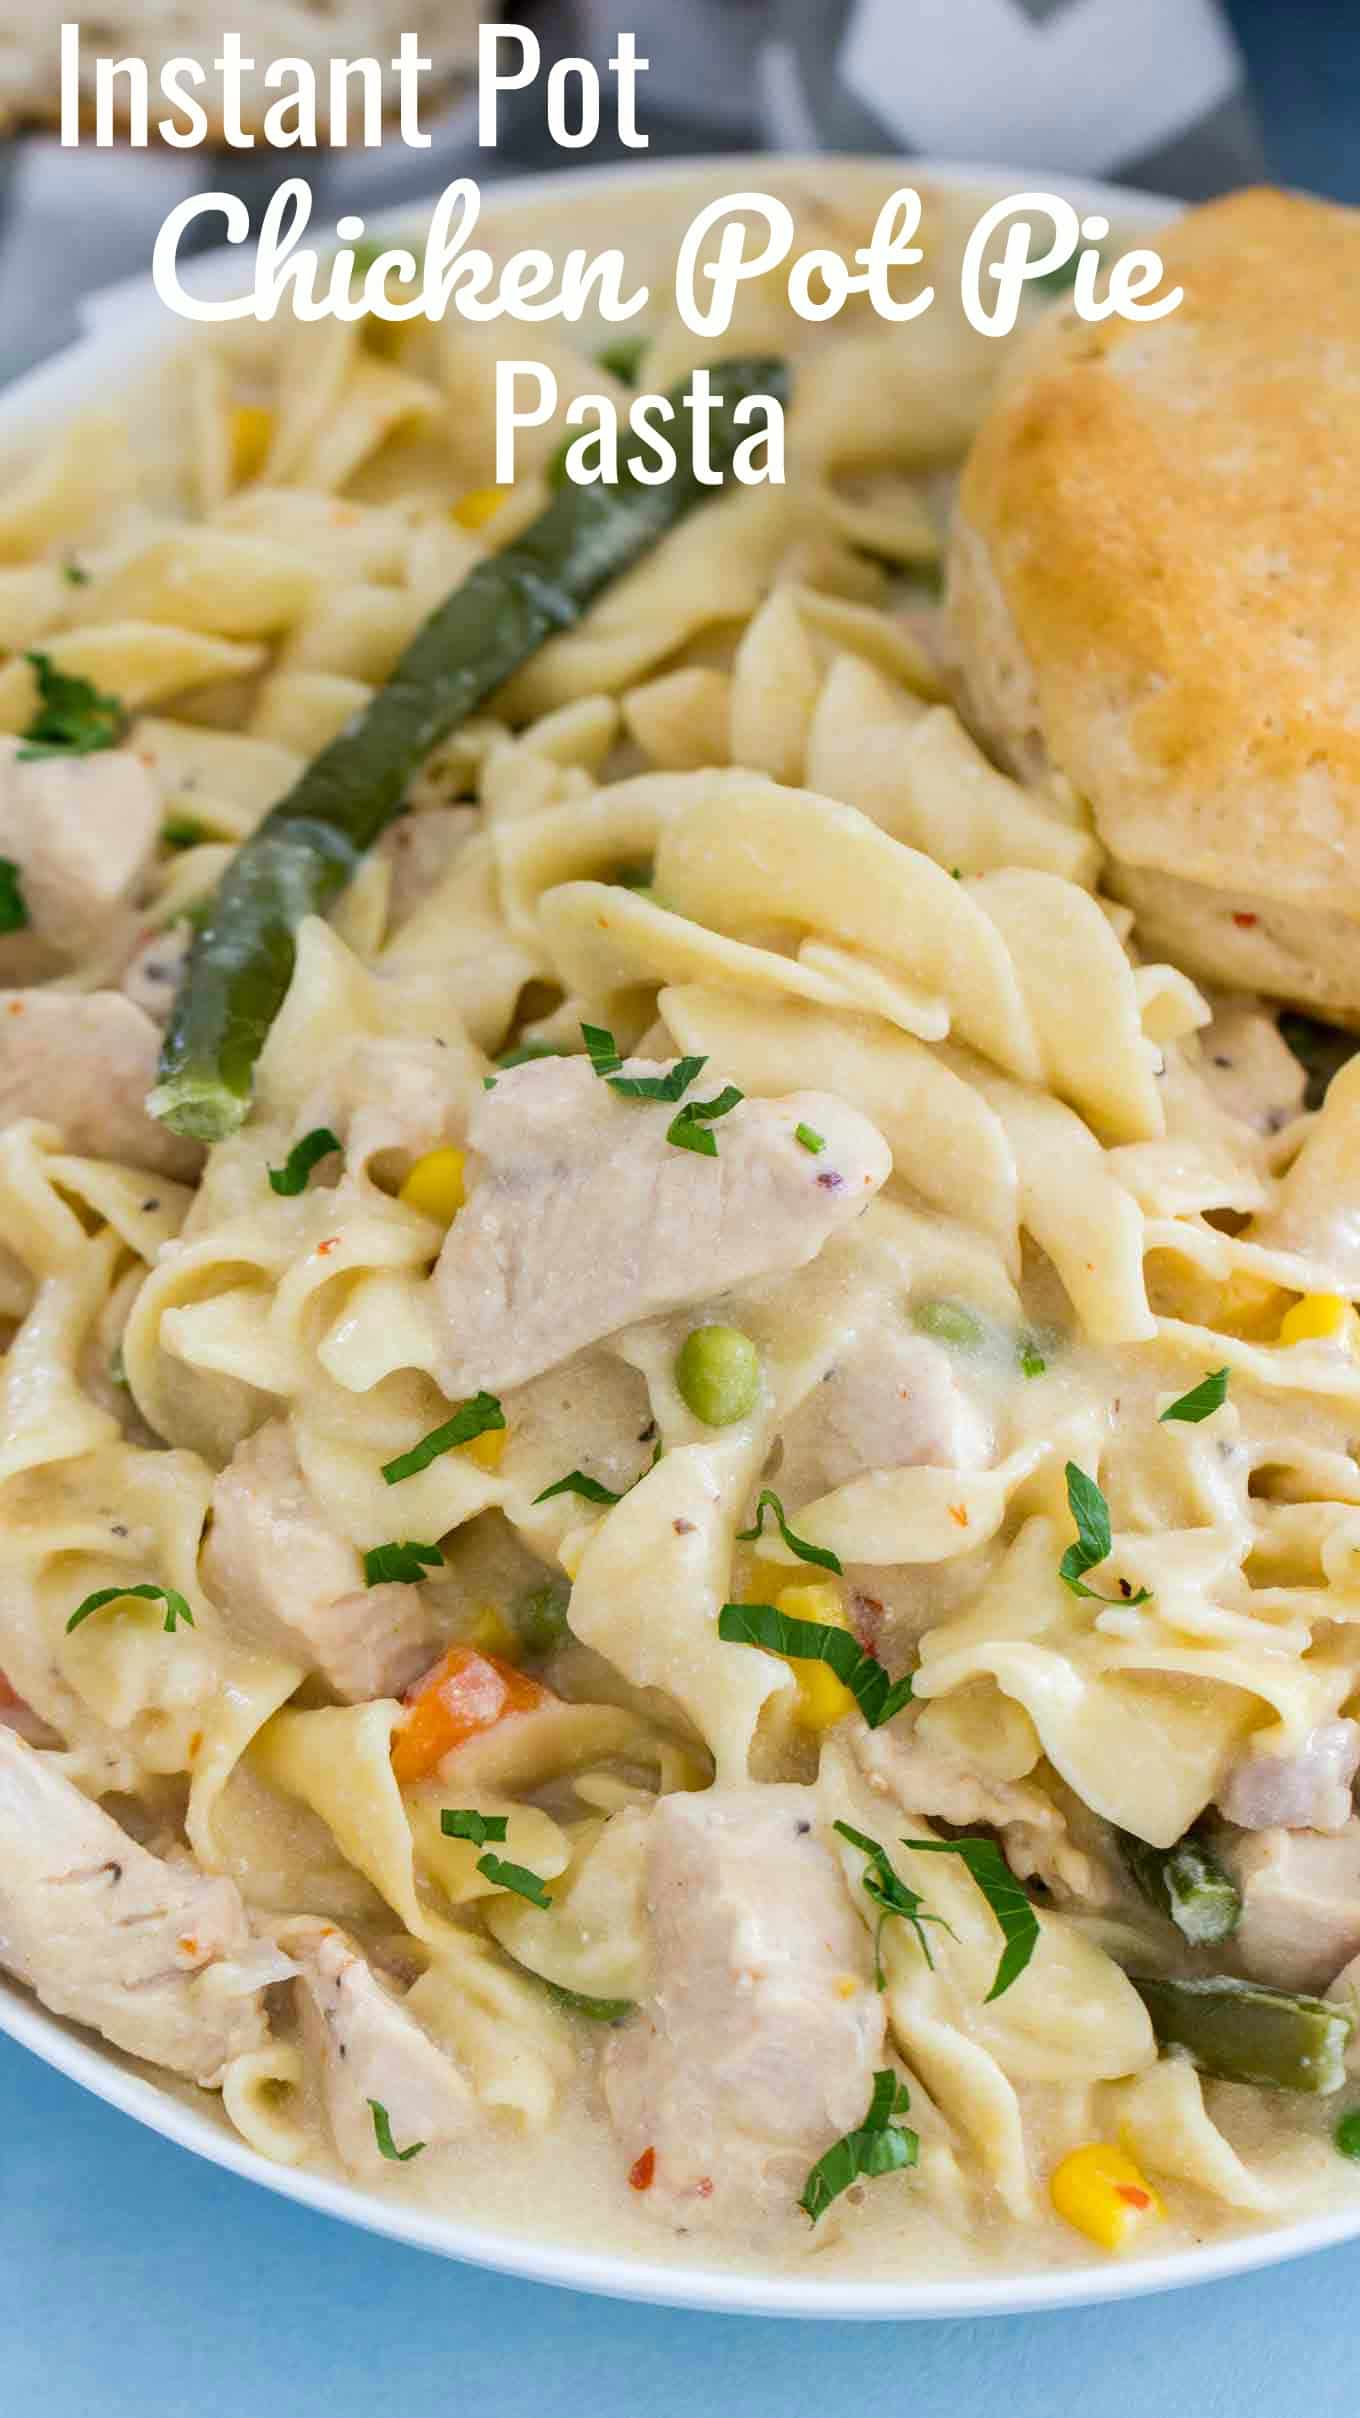 Instant Pot Pasta Recipes - Chicken Pot Pie Pasta